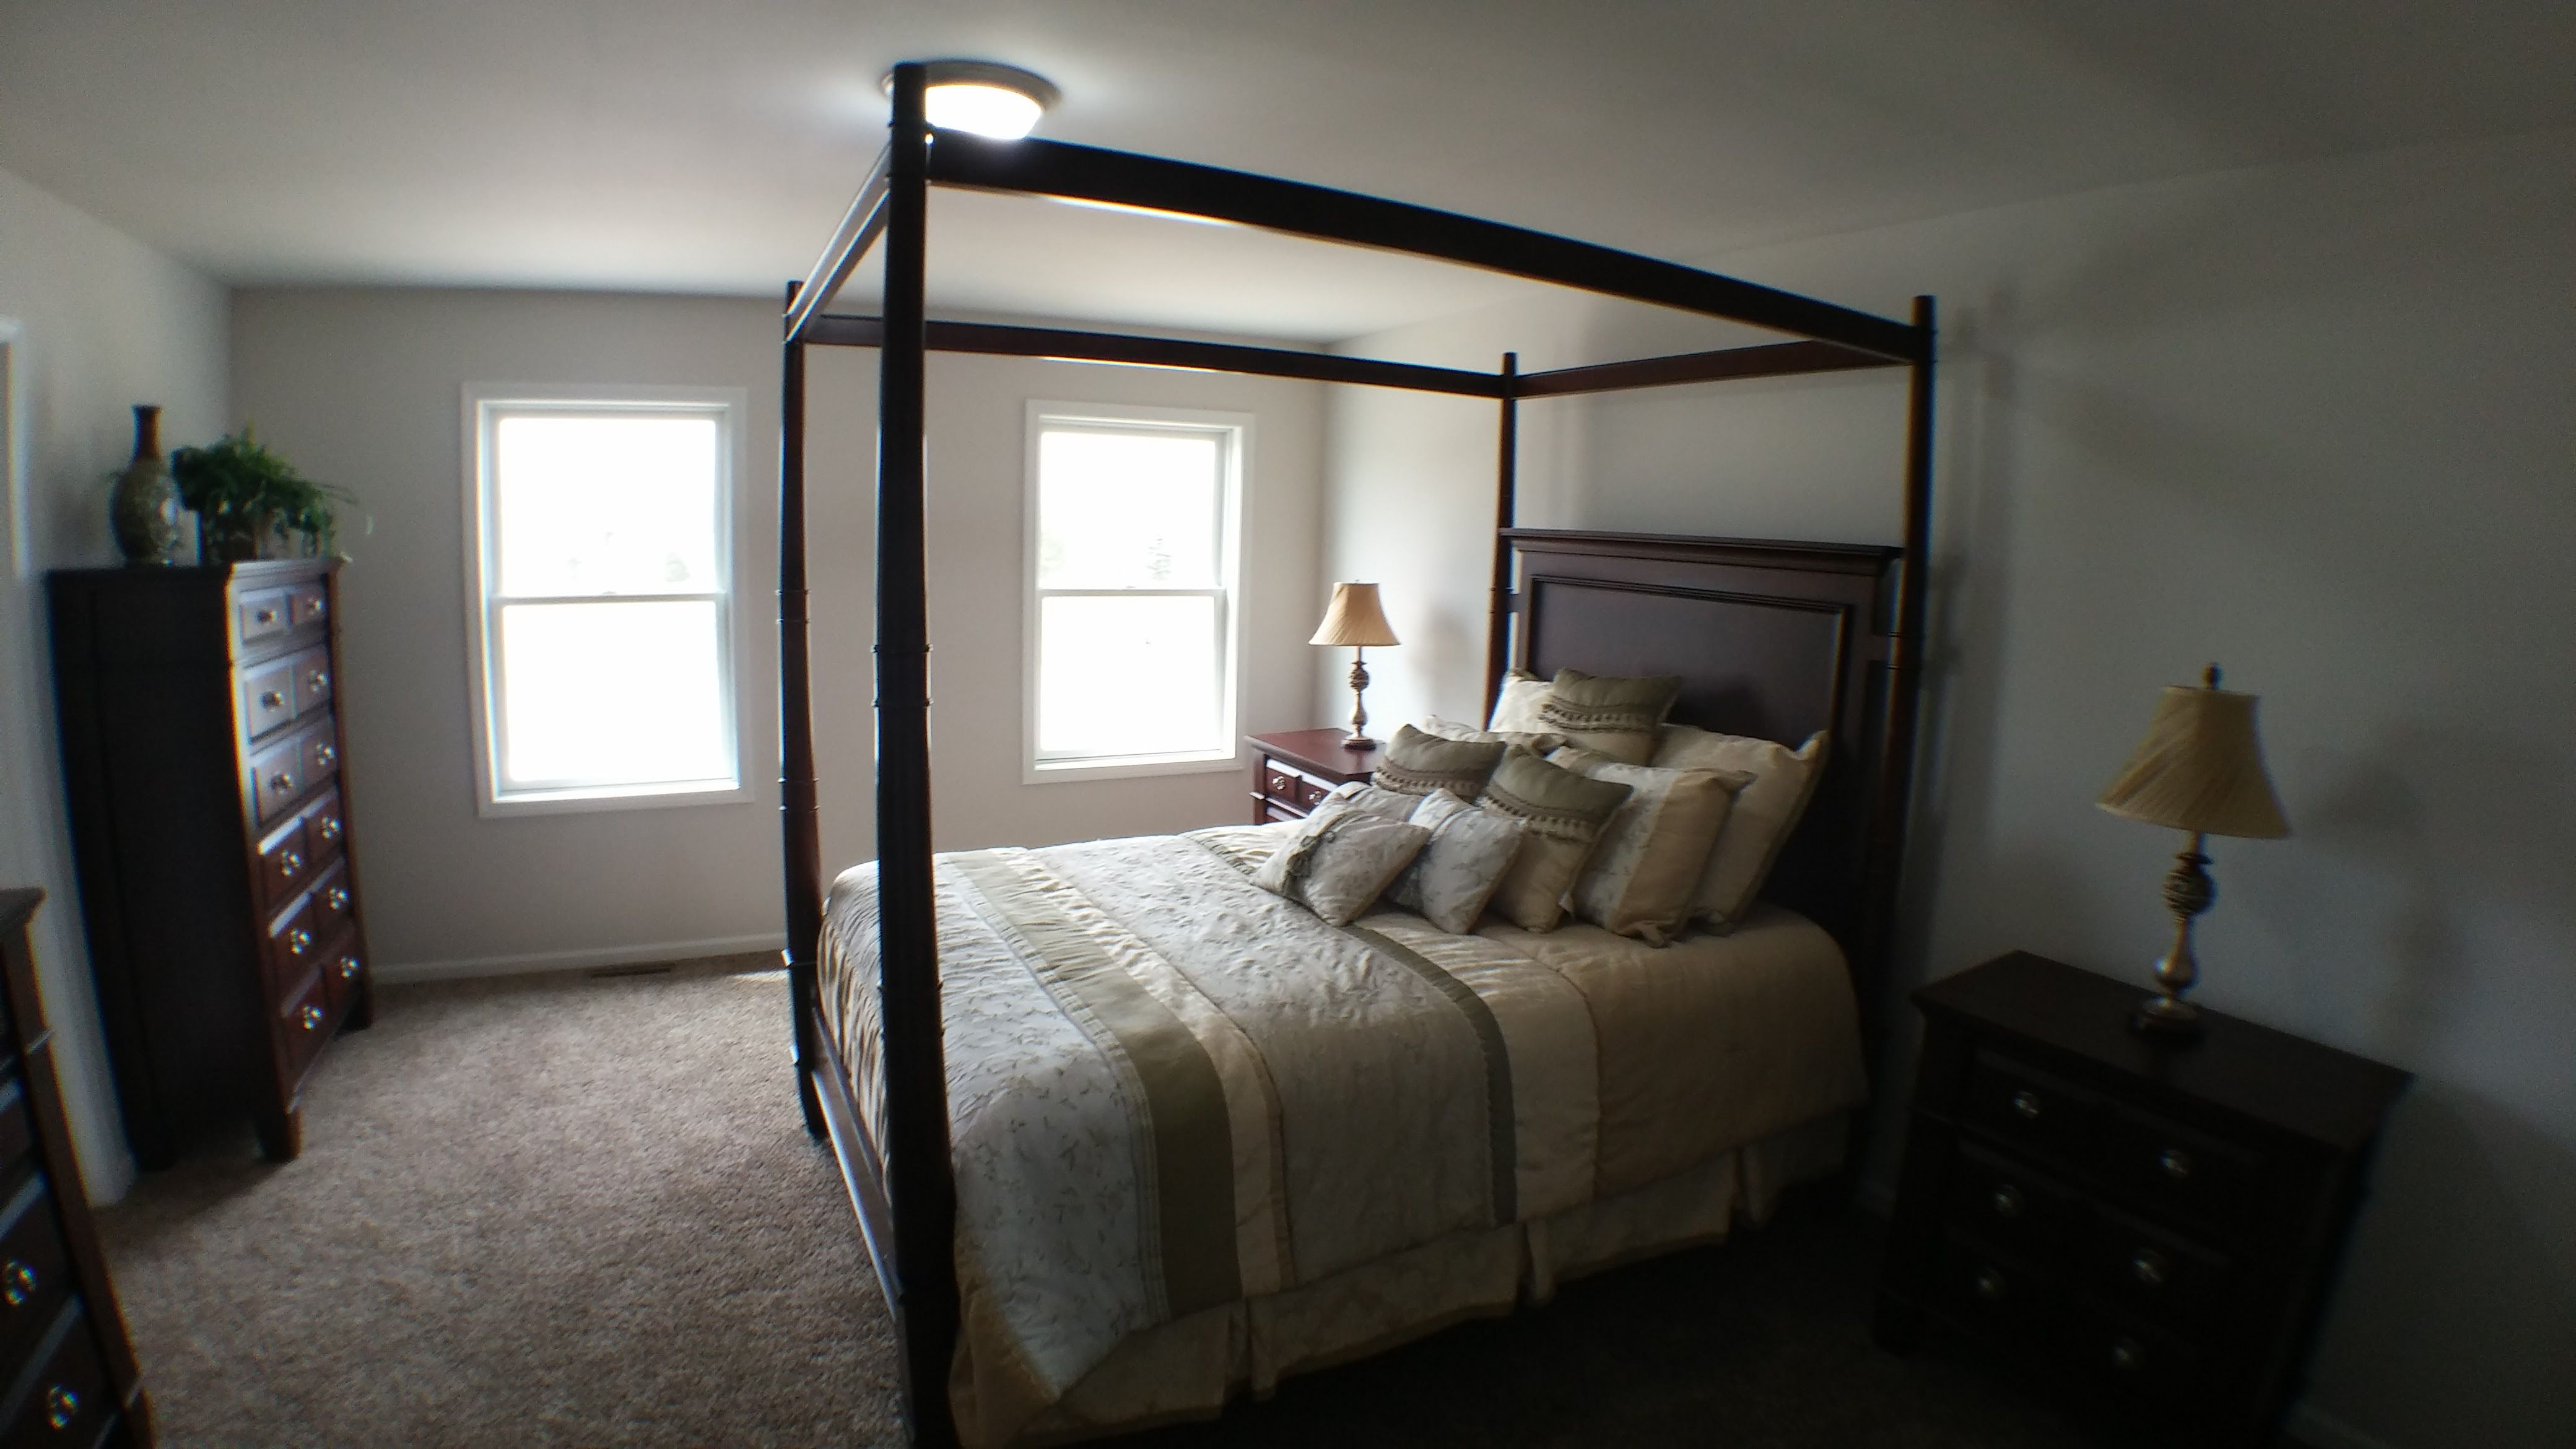 Bedroom featured in the Irvington By Accent Homes Inc. in Gary, IN